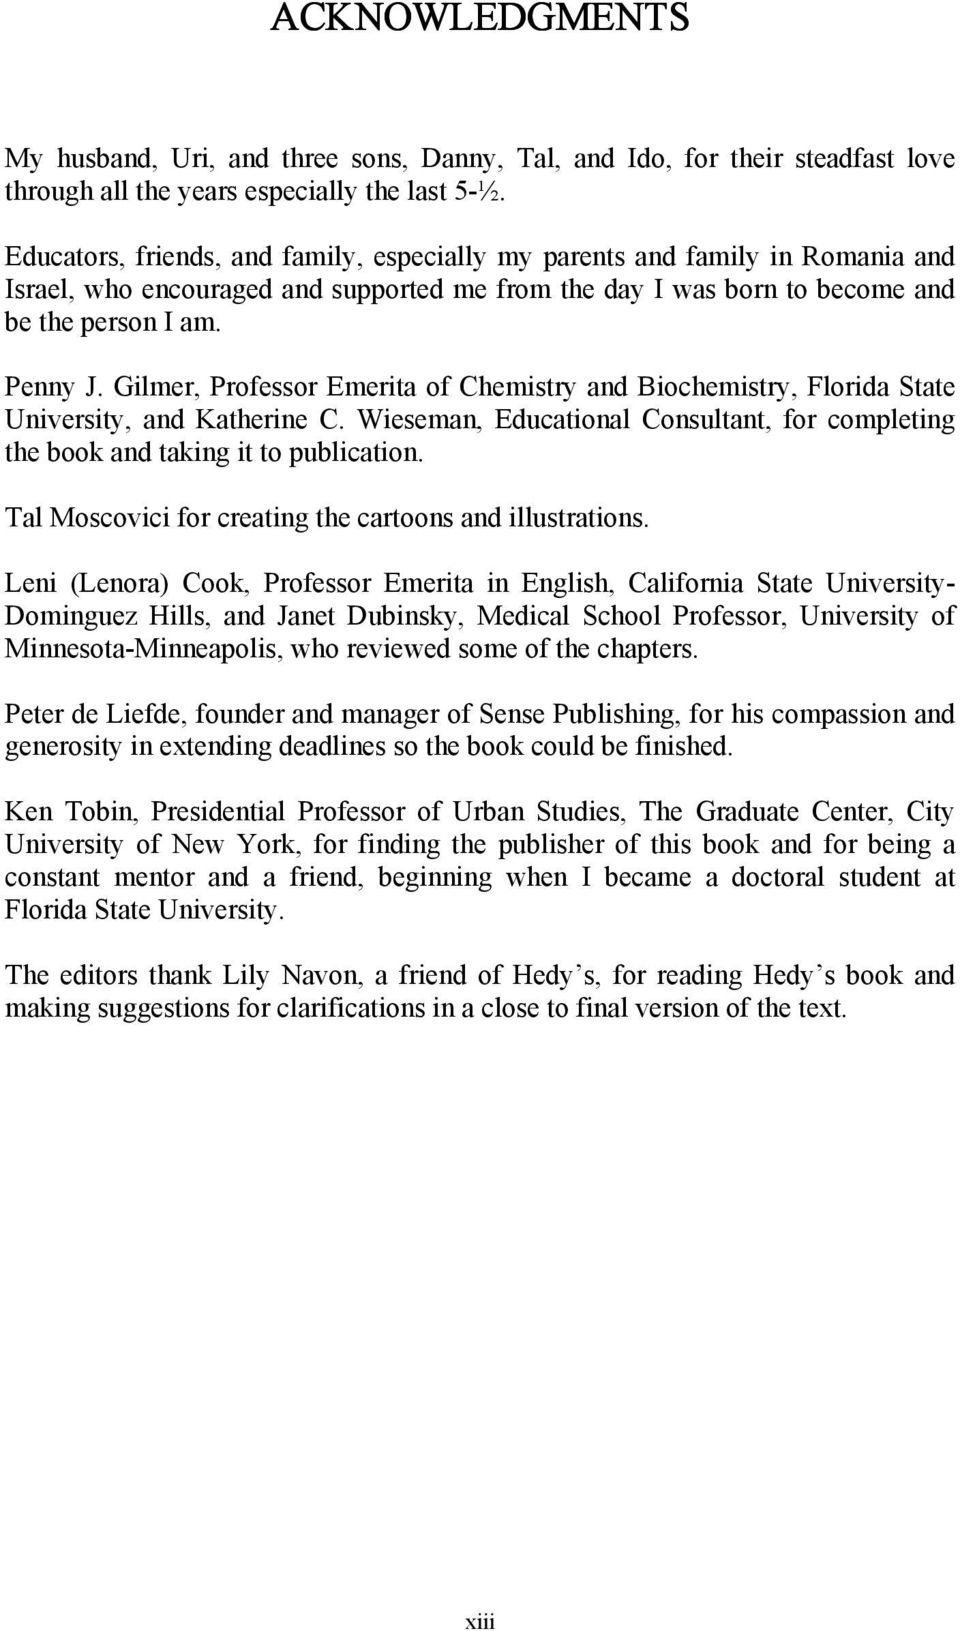 Gilmer, Professor Emerita of Chemistry and Biochemistry, Florida State University, and Katherine C. Wieseman, Educational Consultant, for completing the book and taking it to publication.